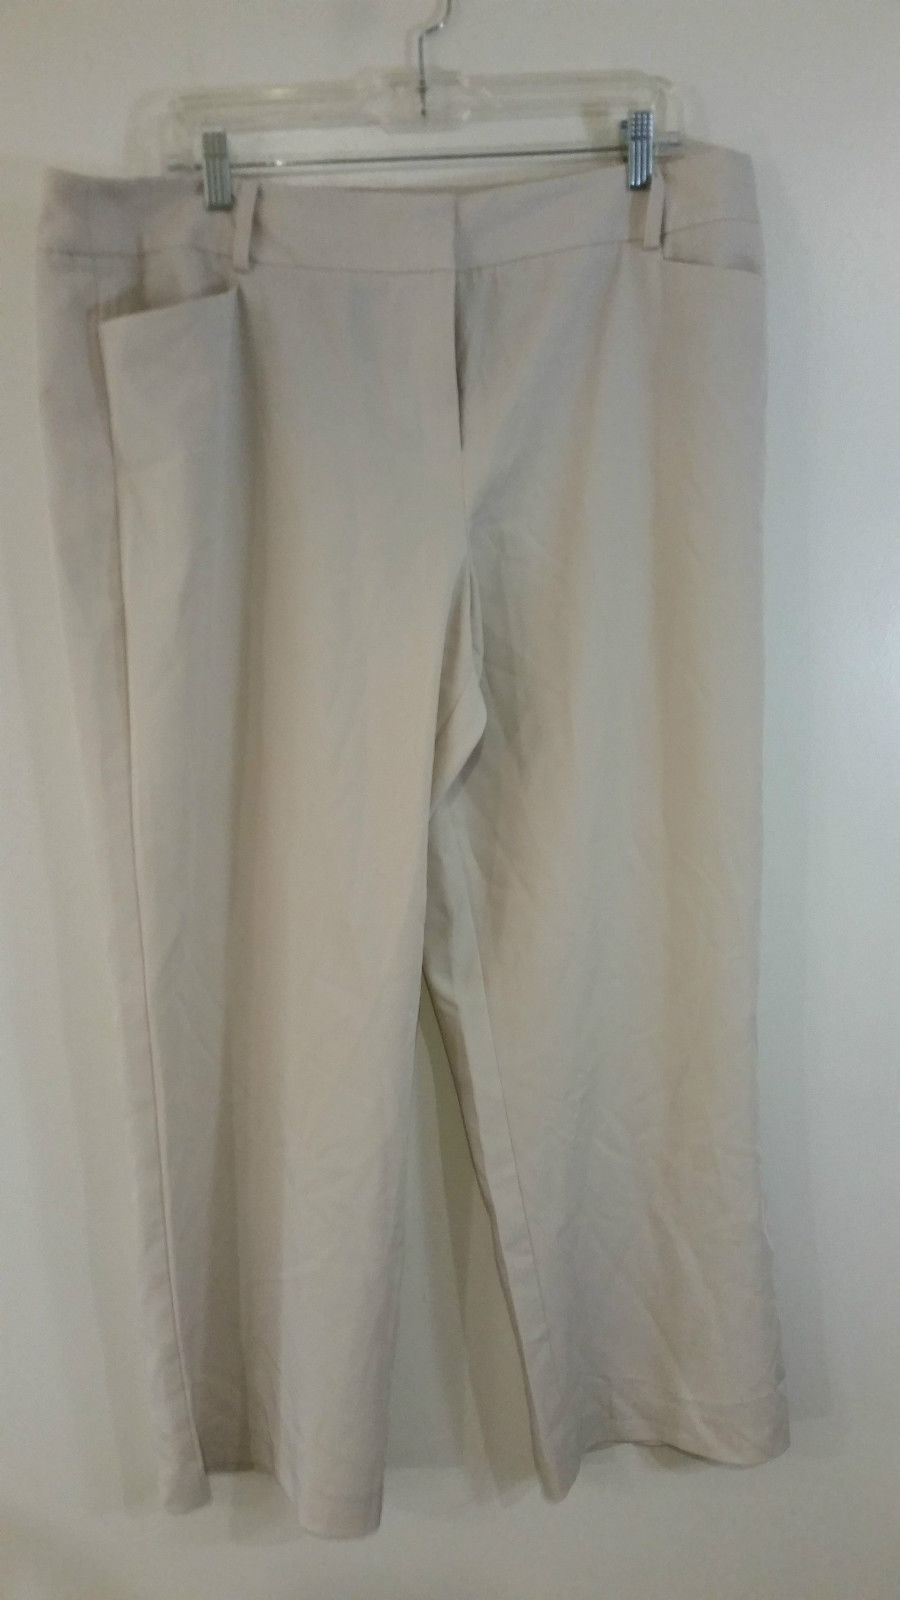 White Pleated Front Dress Pants by George Size 18P 2 Front Pockets 1 Back Pocket